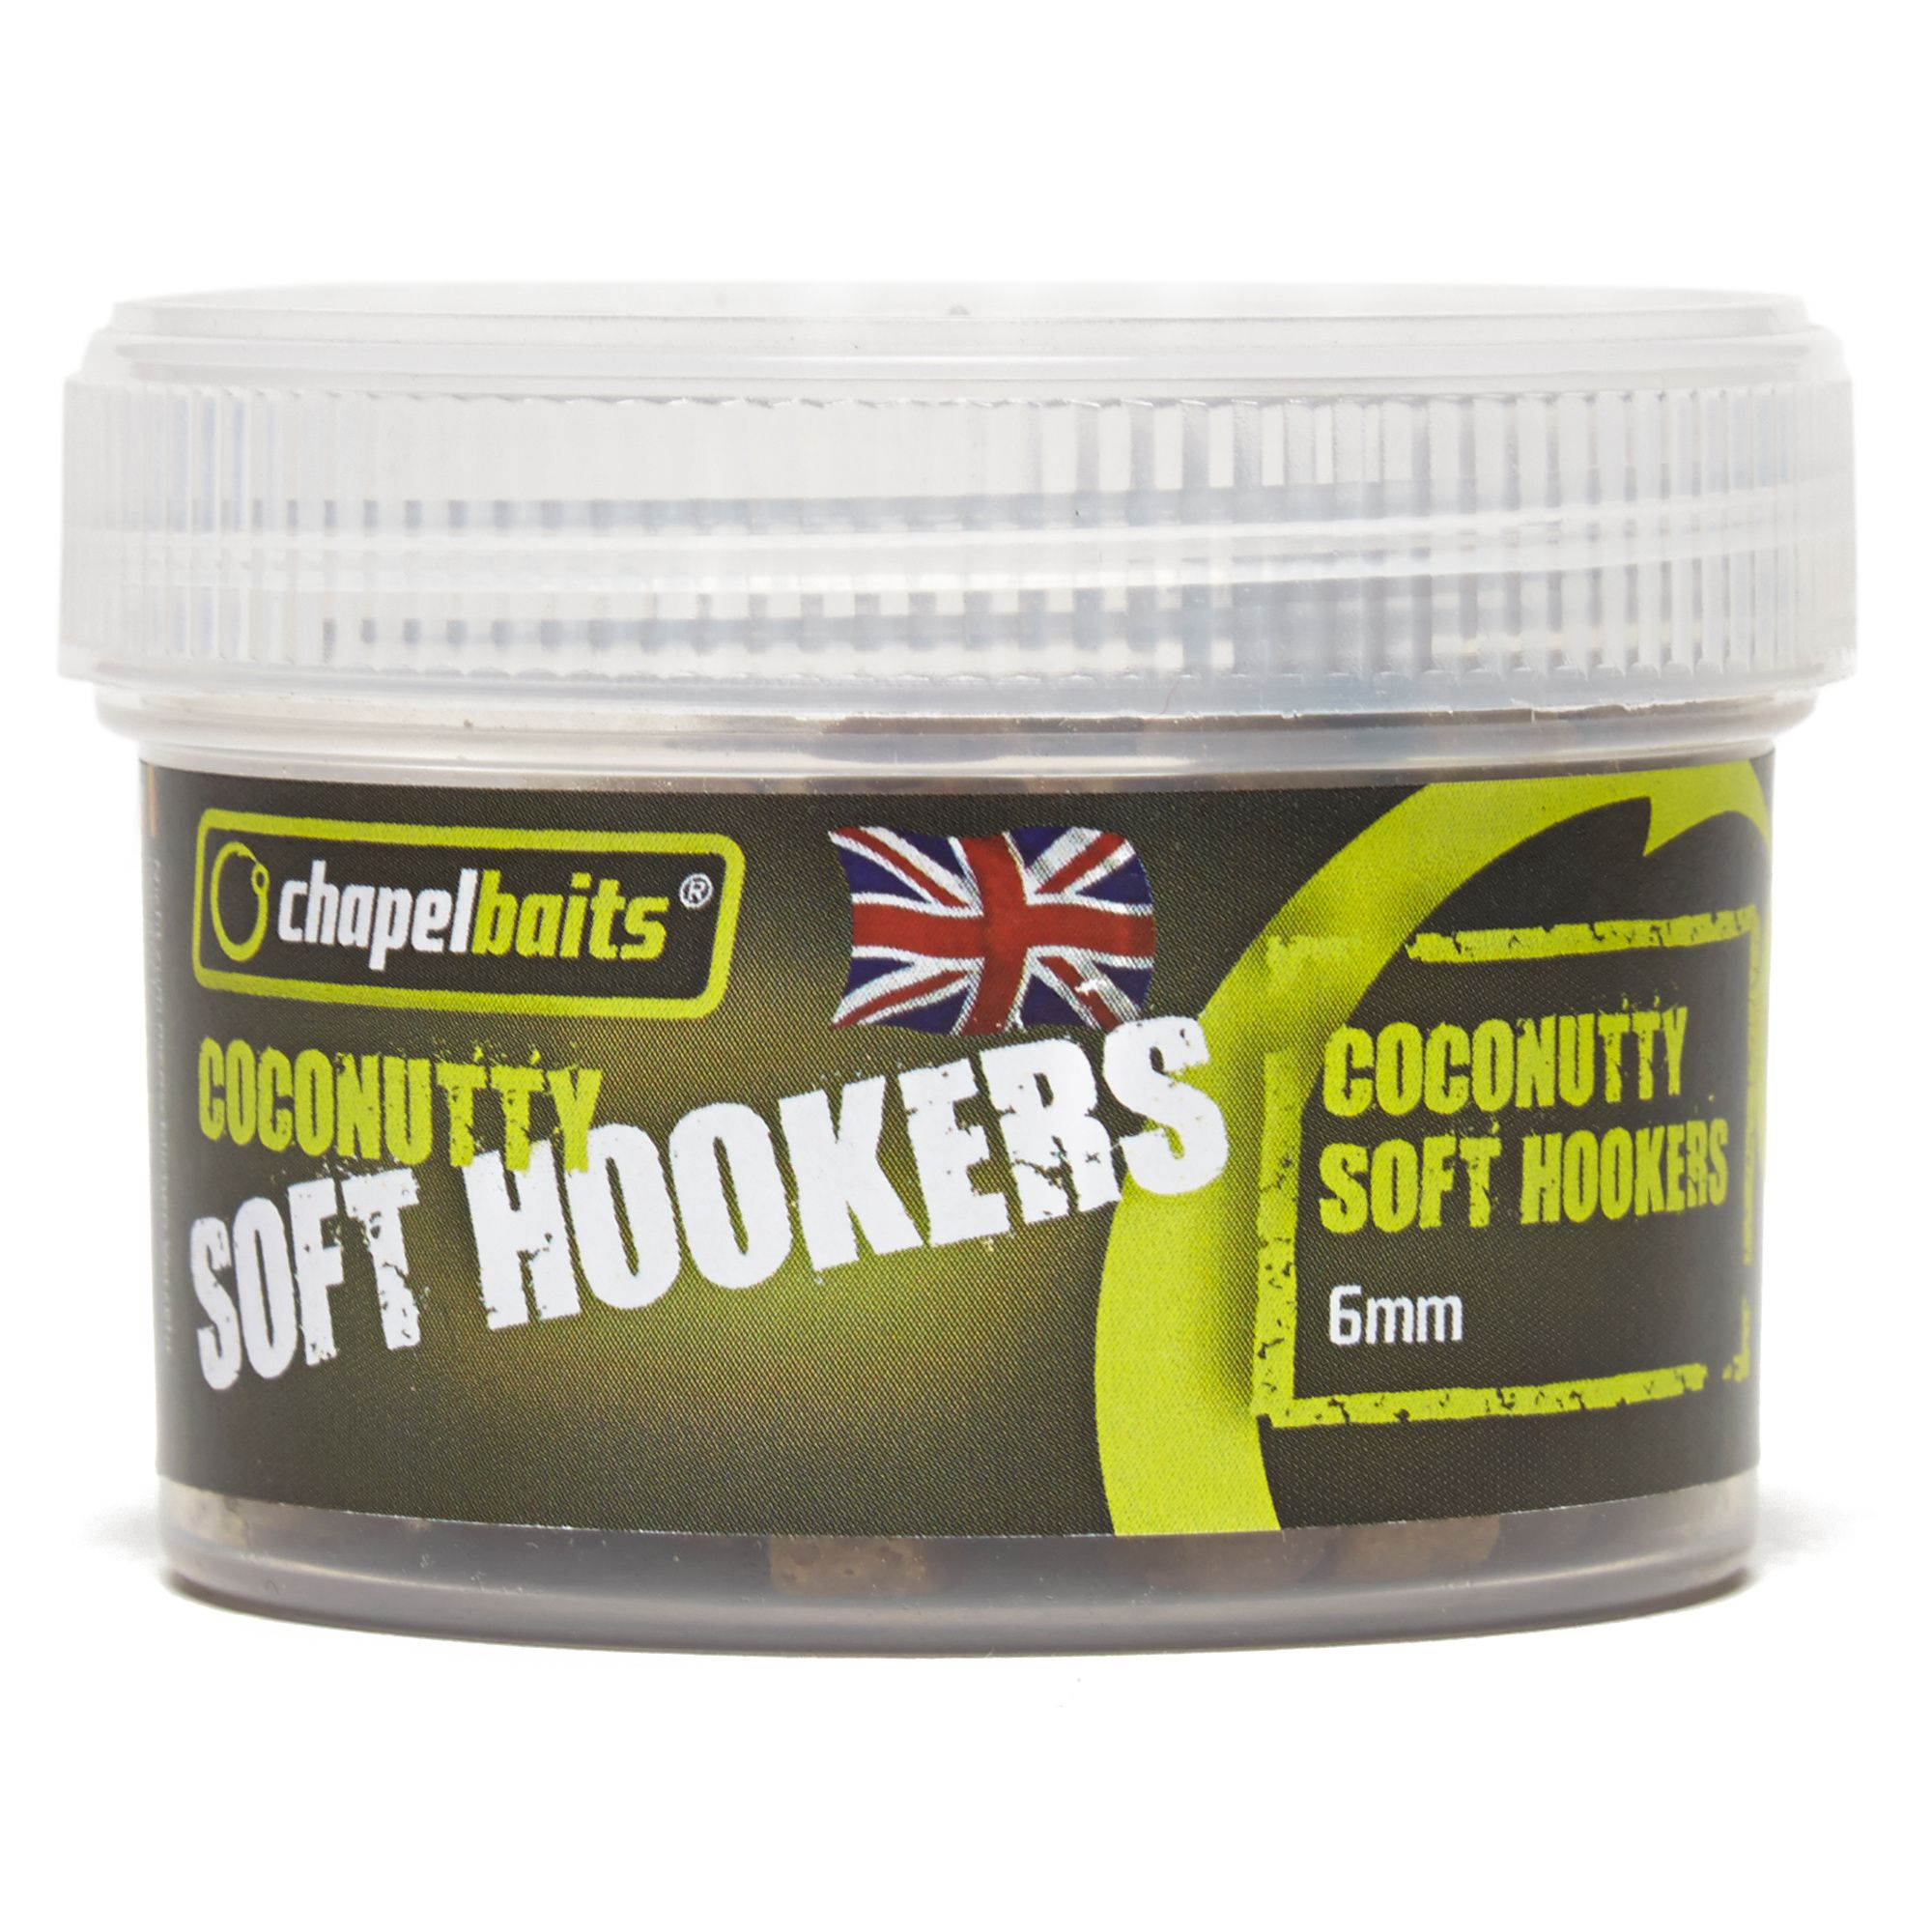 CHAPEL BAITS 6mm Soft Hooker Pellets, Coconutty